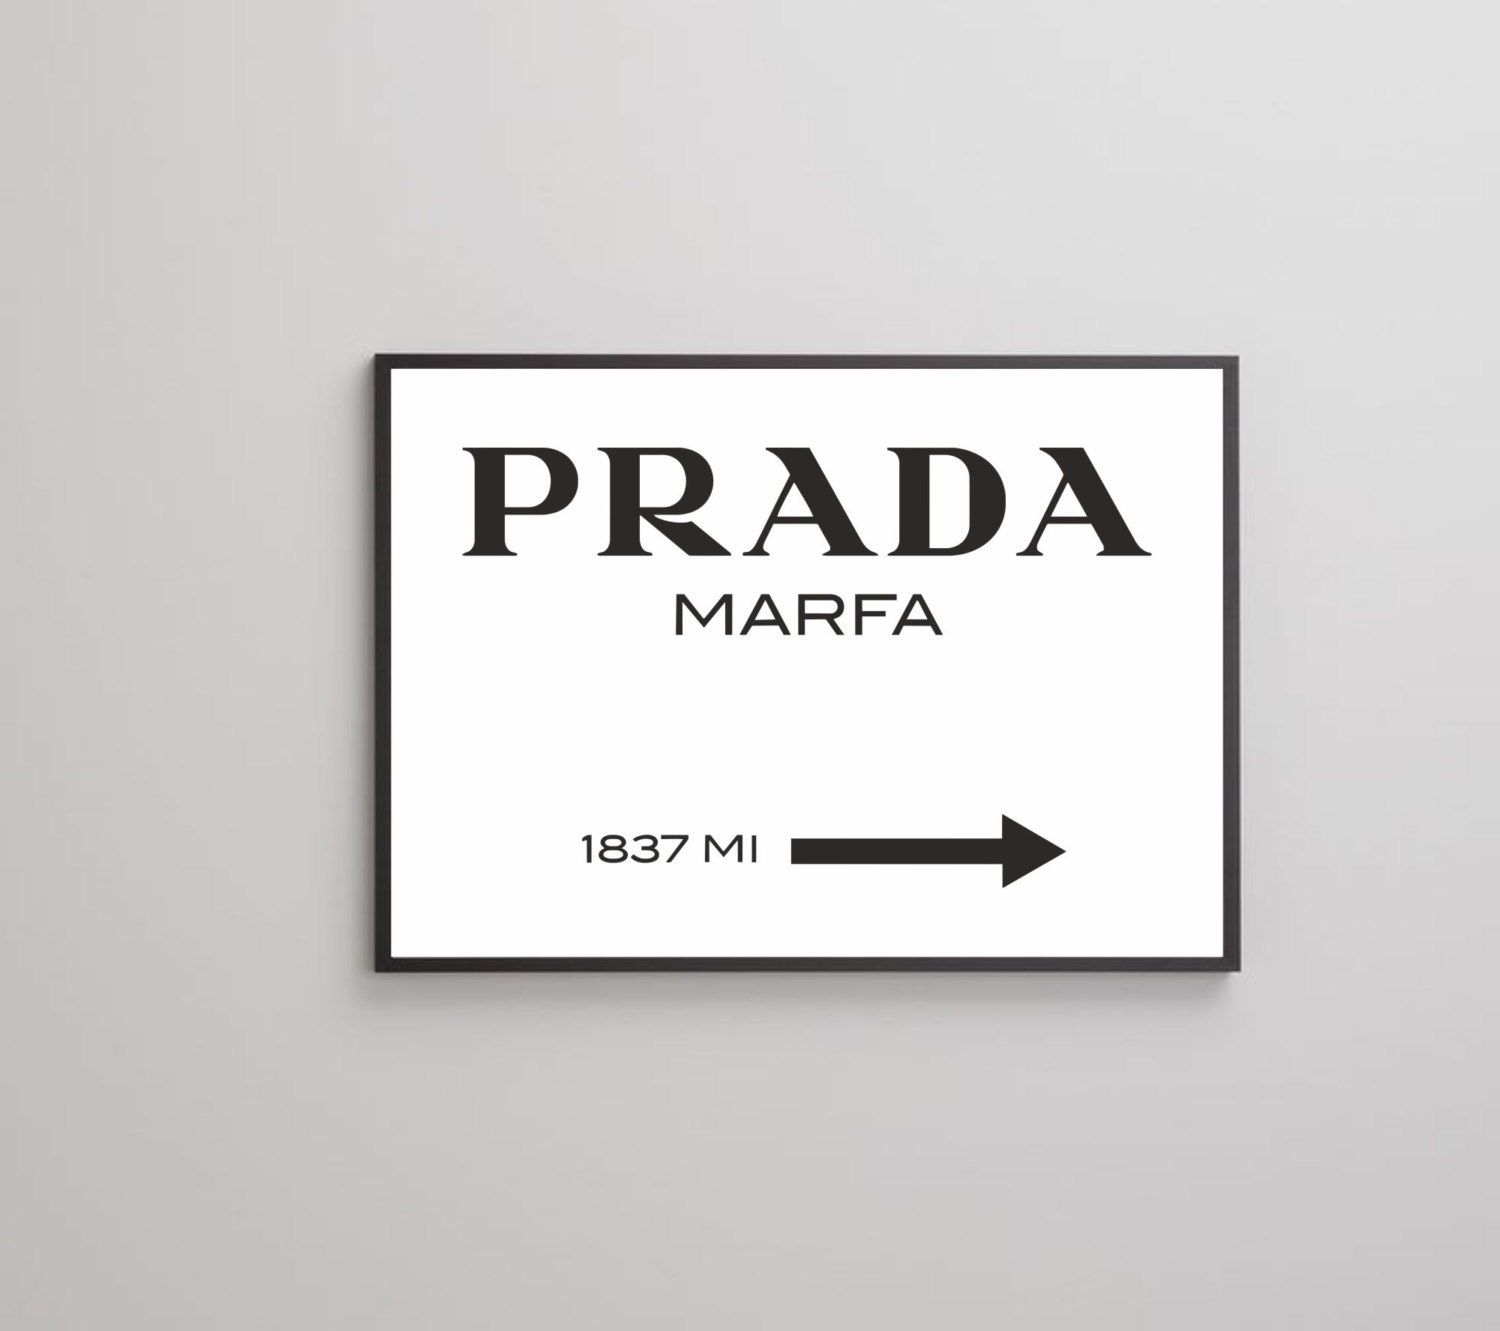 prada marfa poster print on paper or canvas up to a0 size etsy